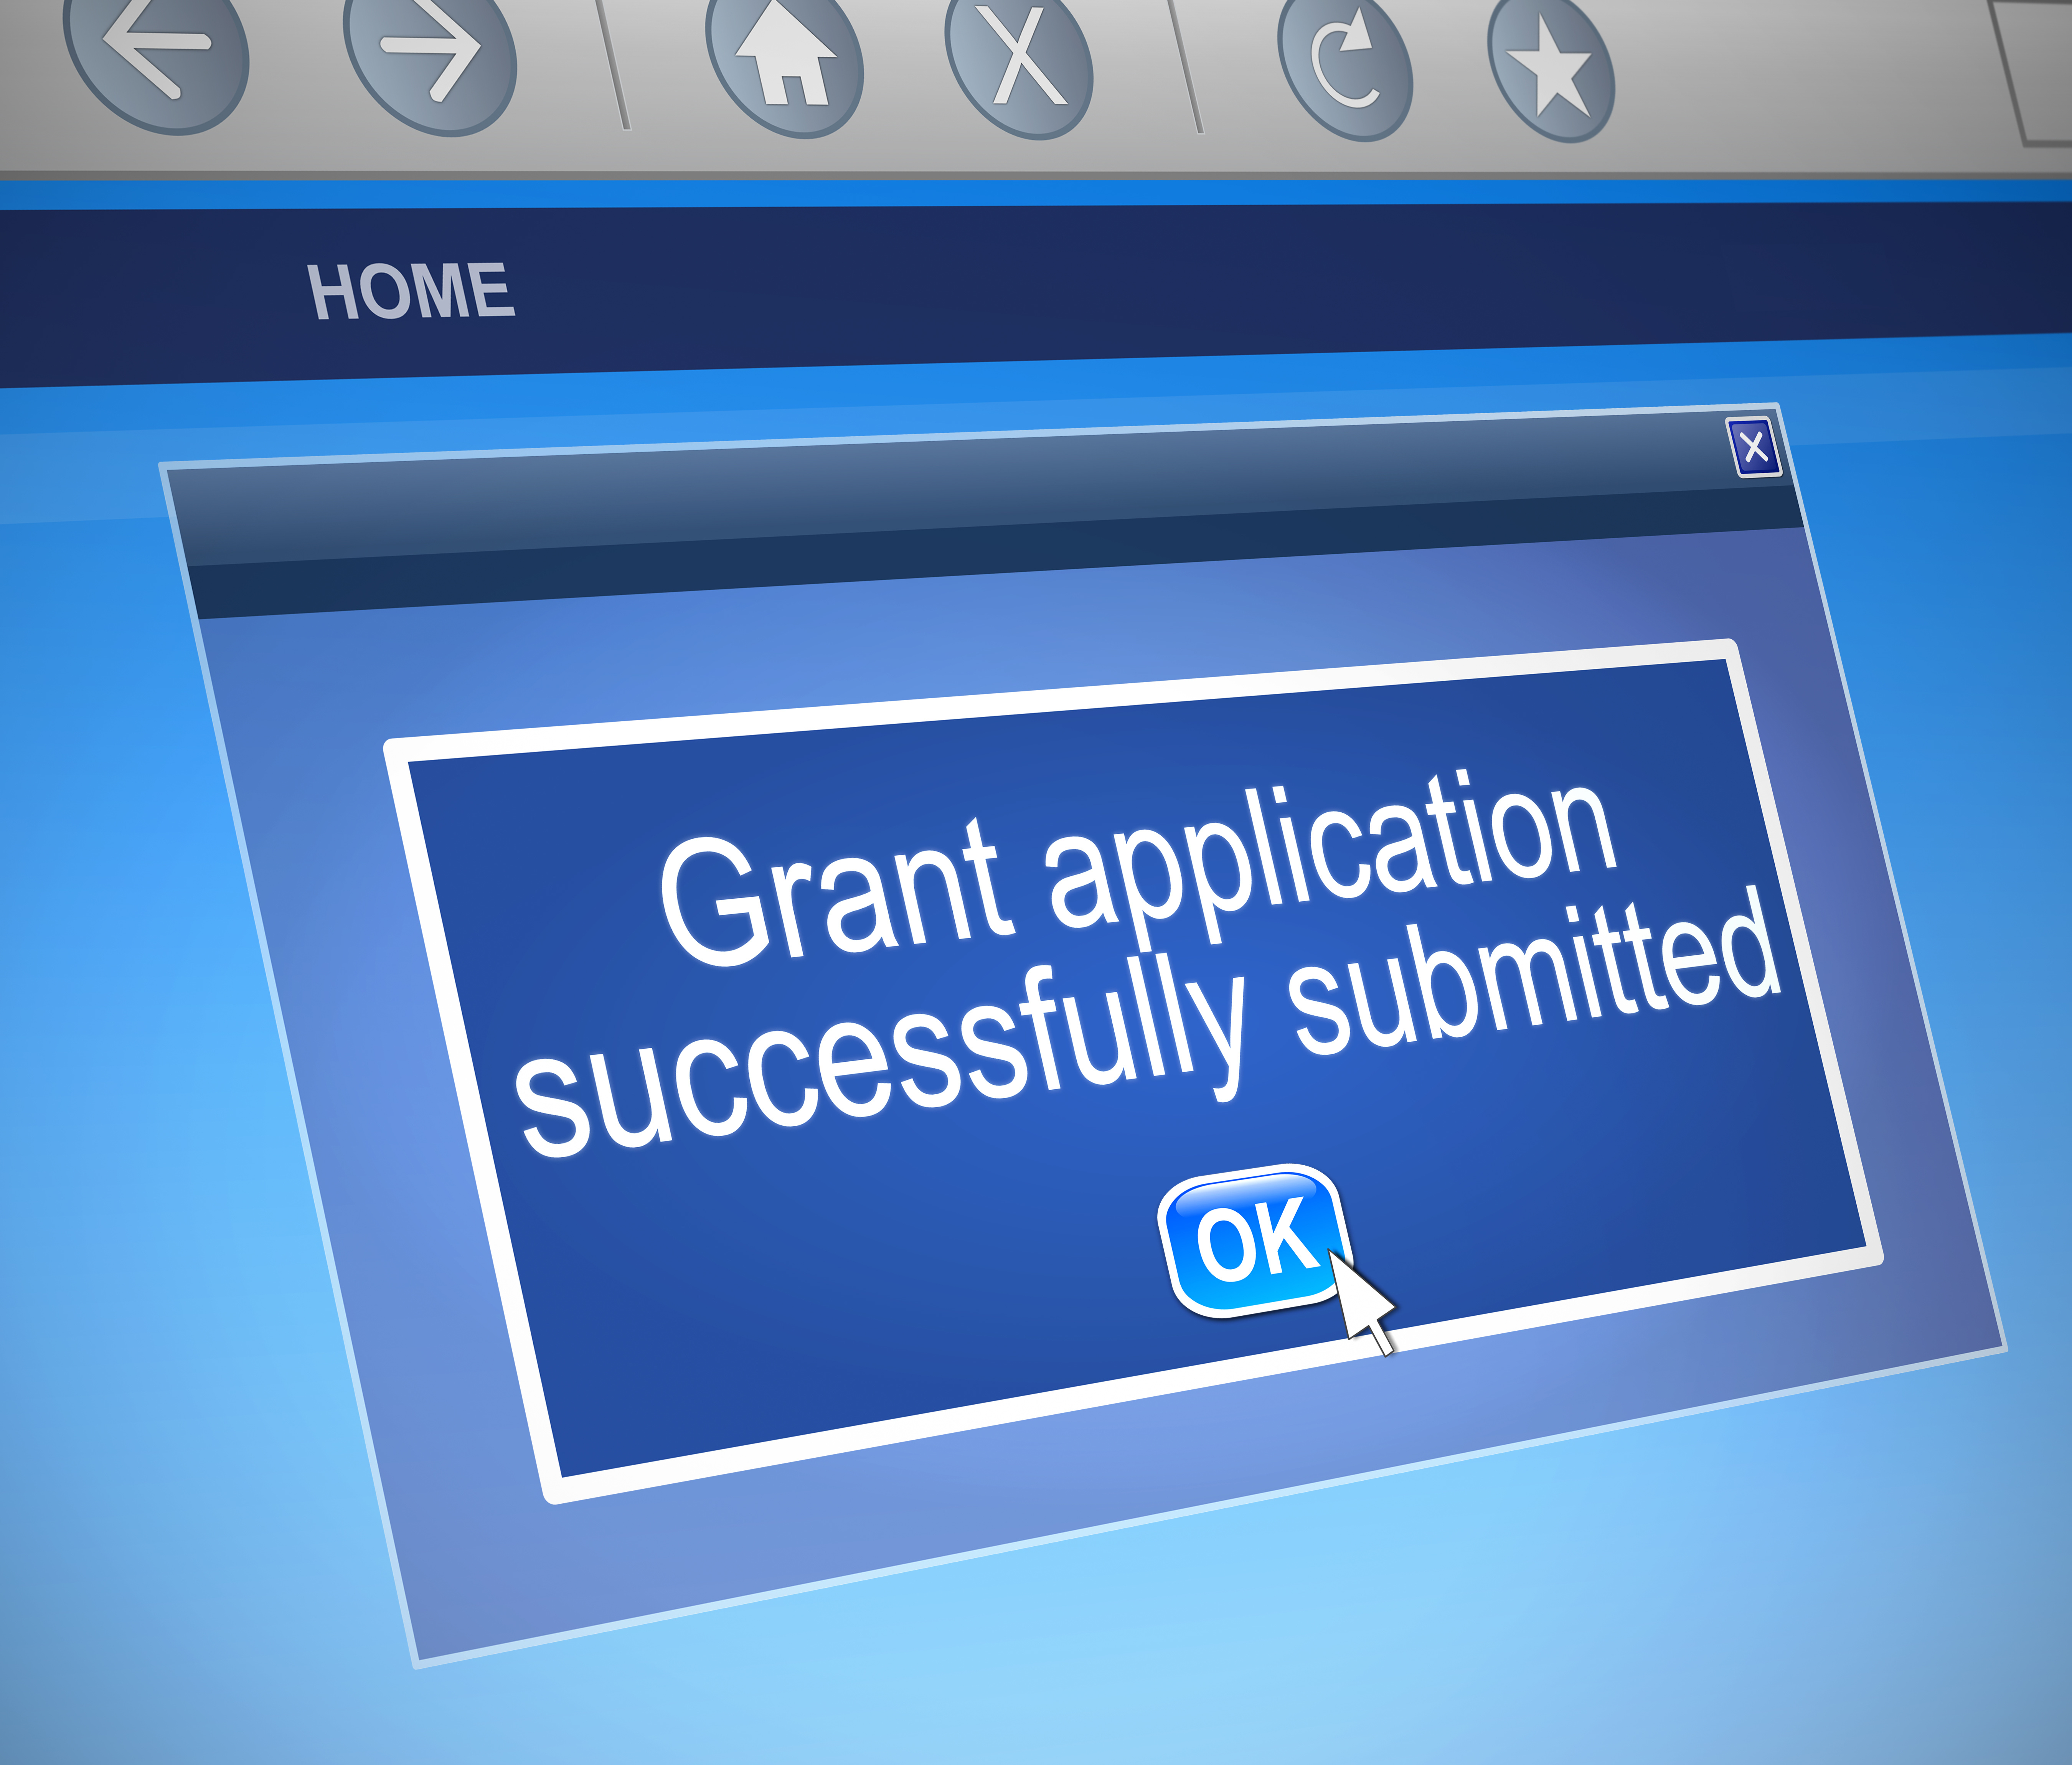 Submit an application for a grant